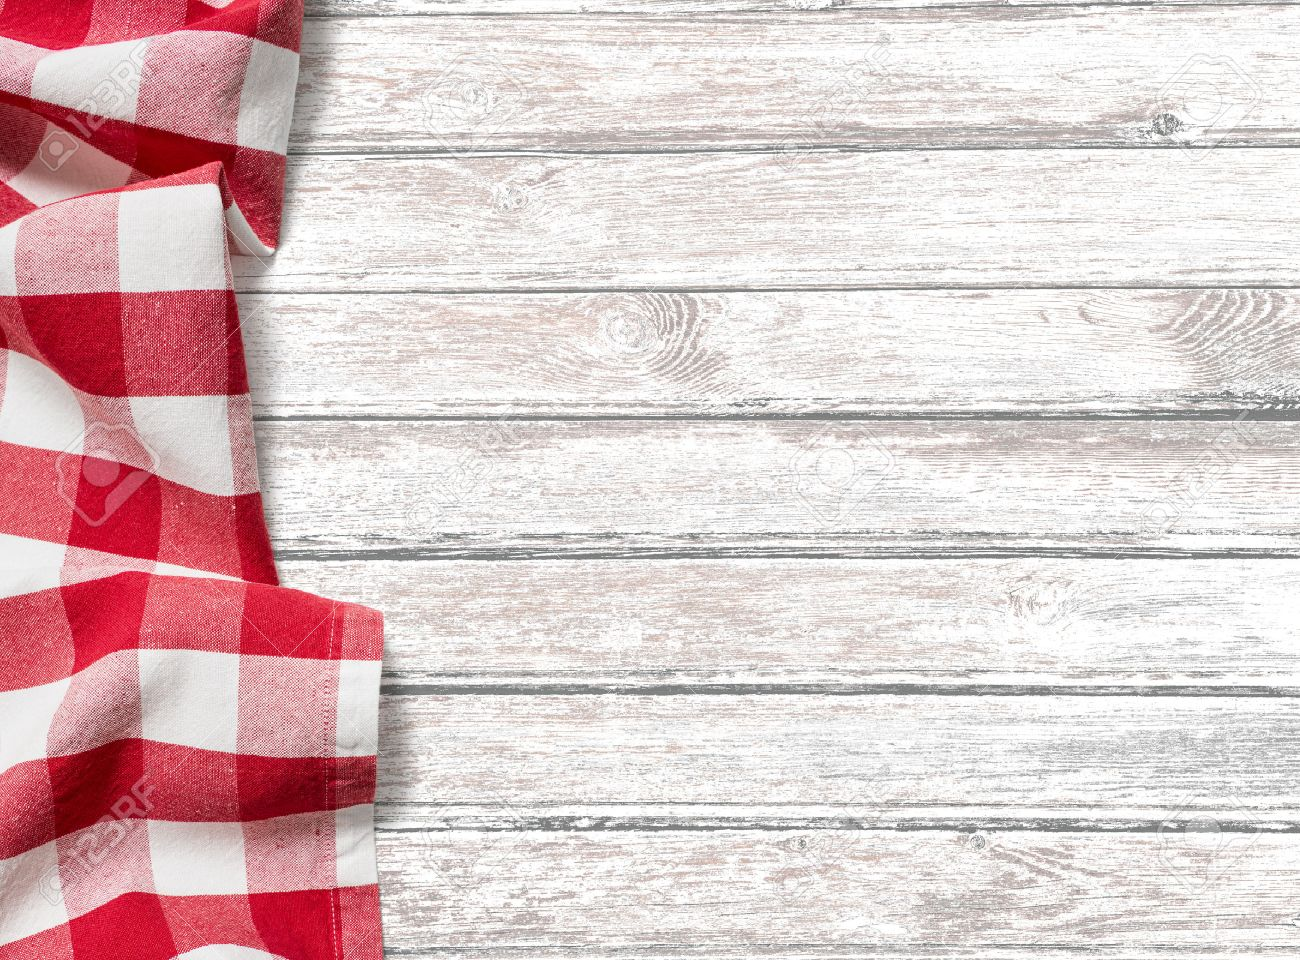 photo kitchen table background with red picnic cloth red kitchen table kitchen table background with red picnic cloth